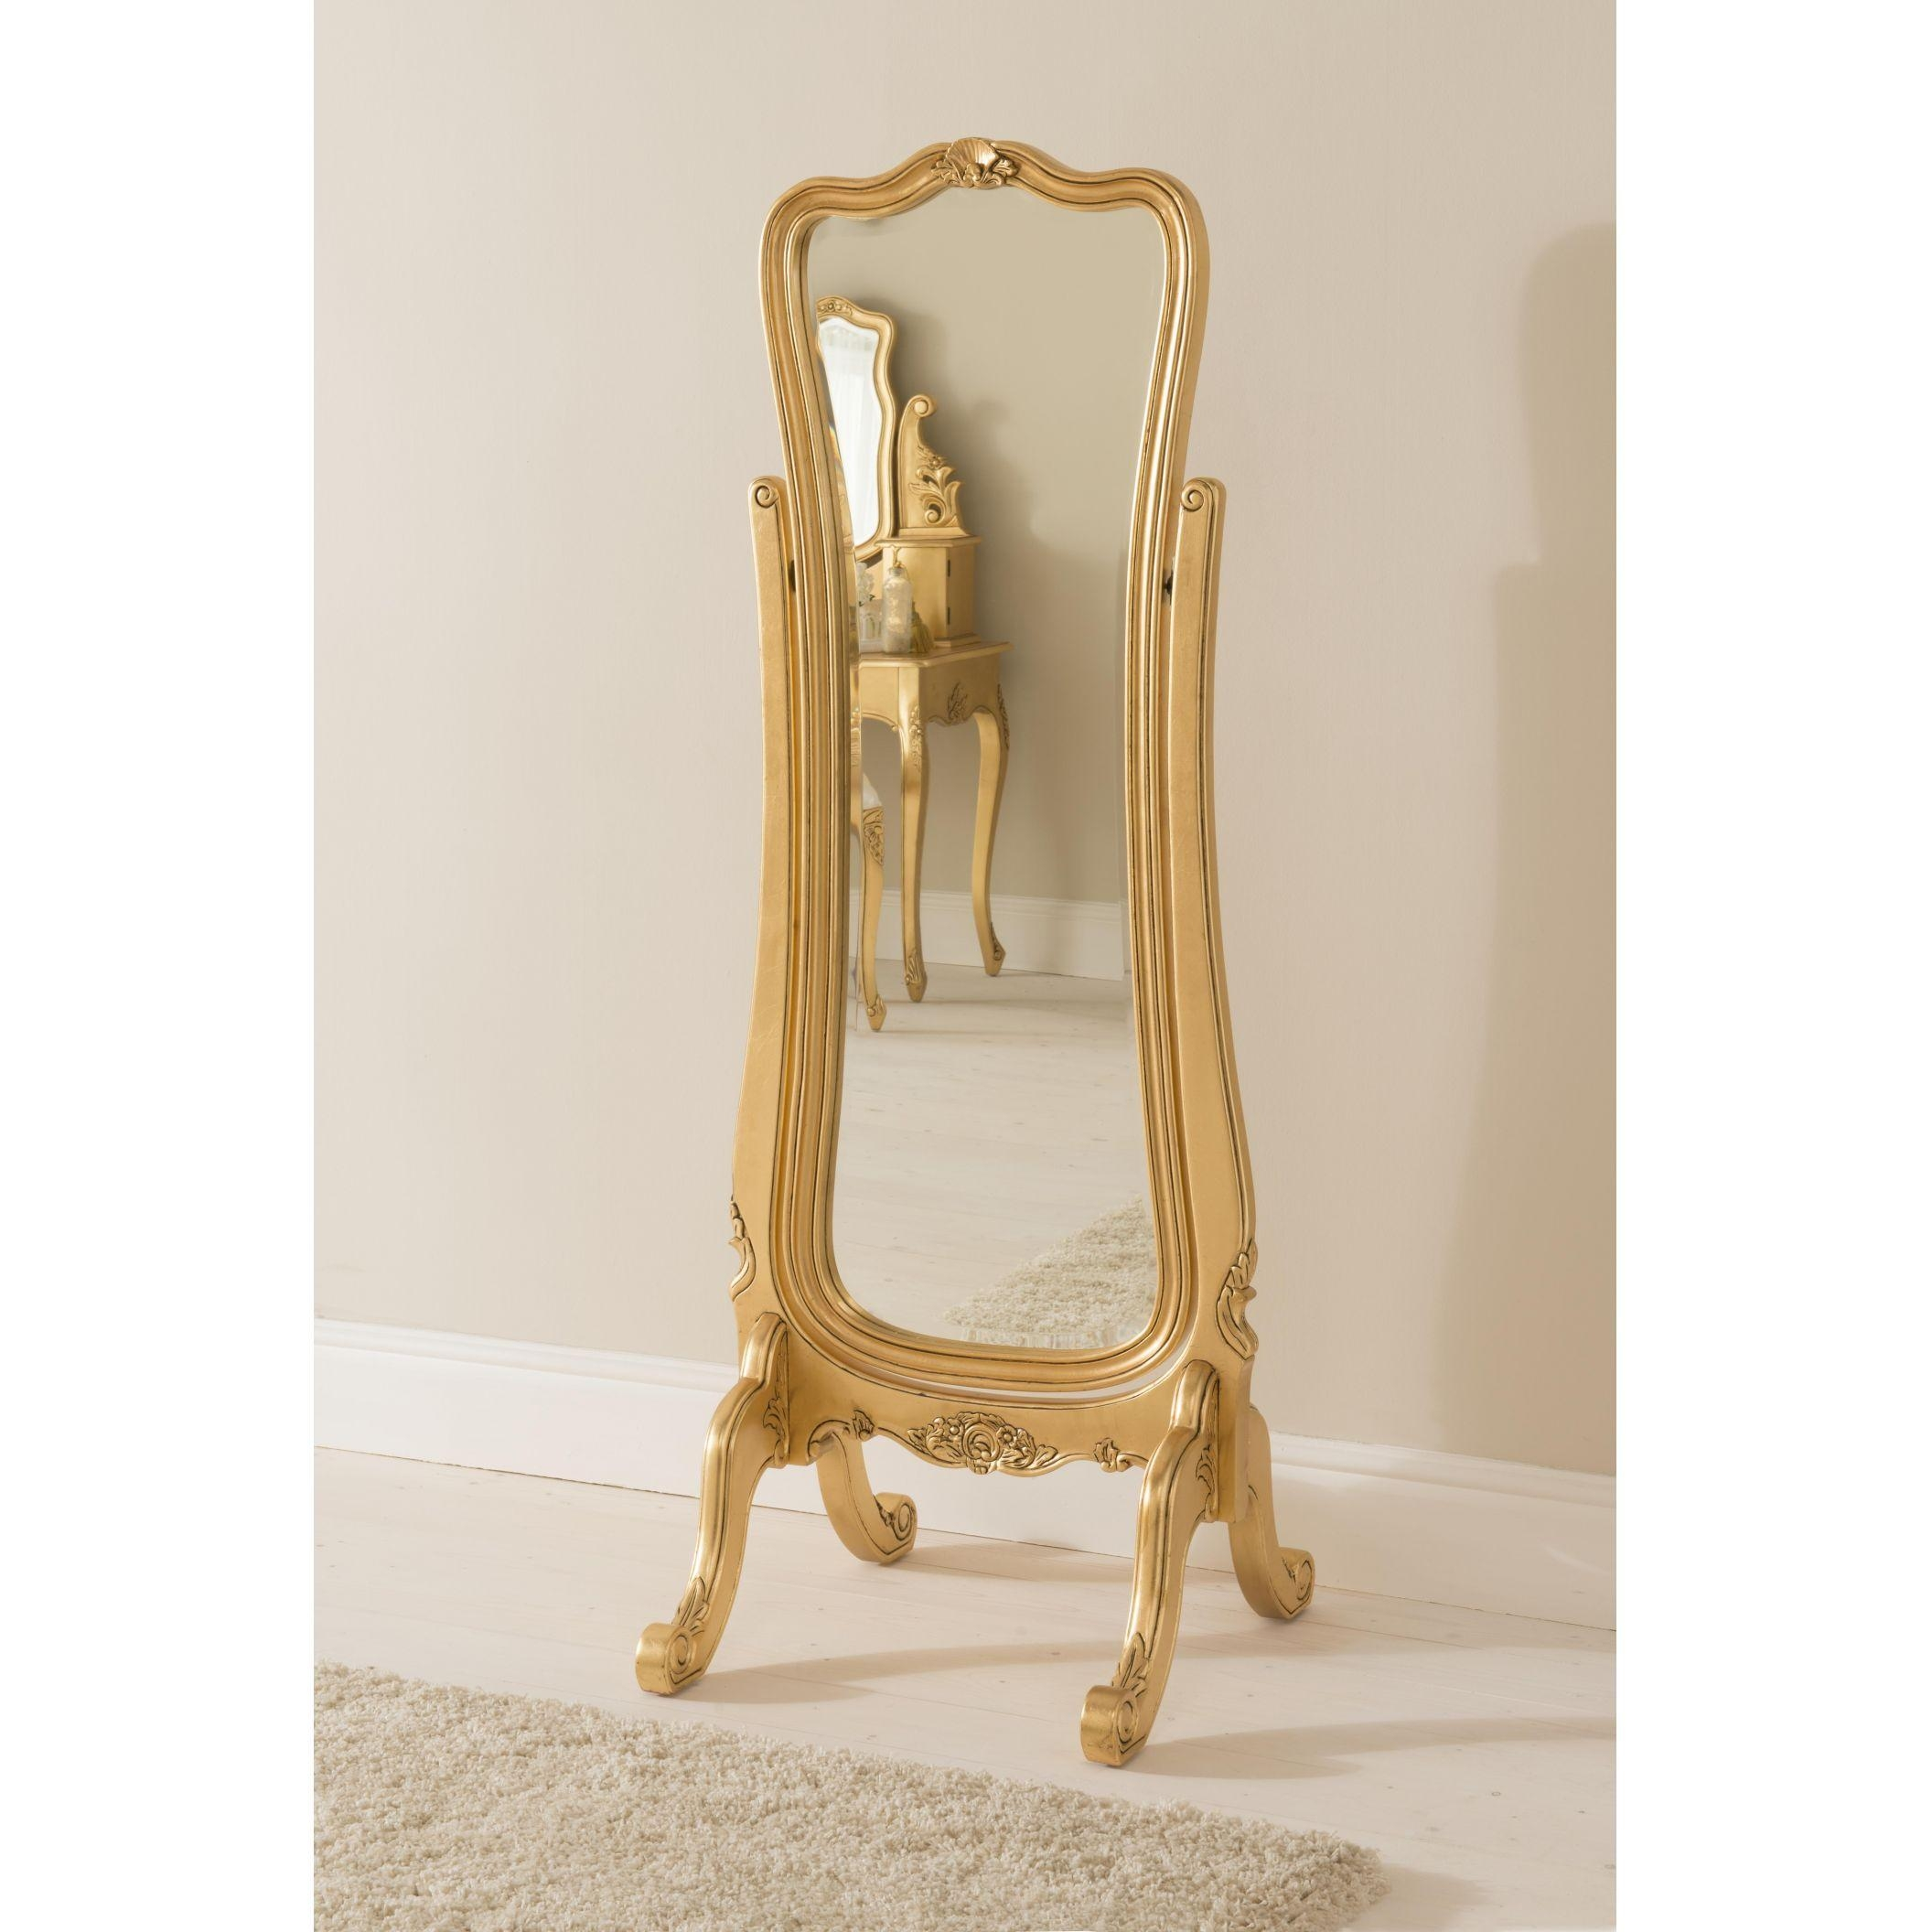 Decorating: Antique Wooden Cheval Mirror With Wooden Floor And For Baroque Floor Mirror (Image 11 of 20)